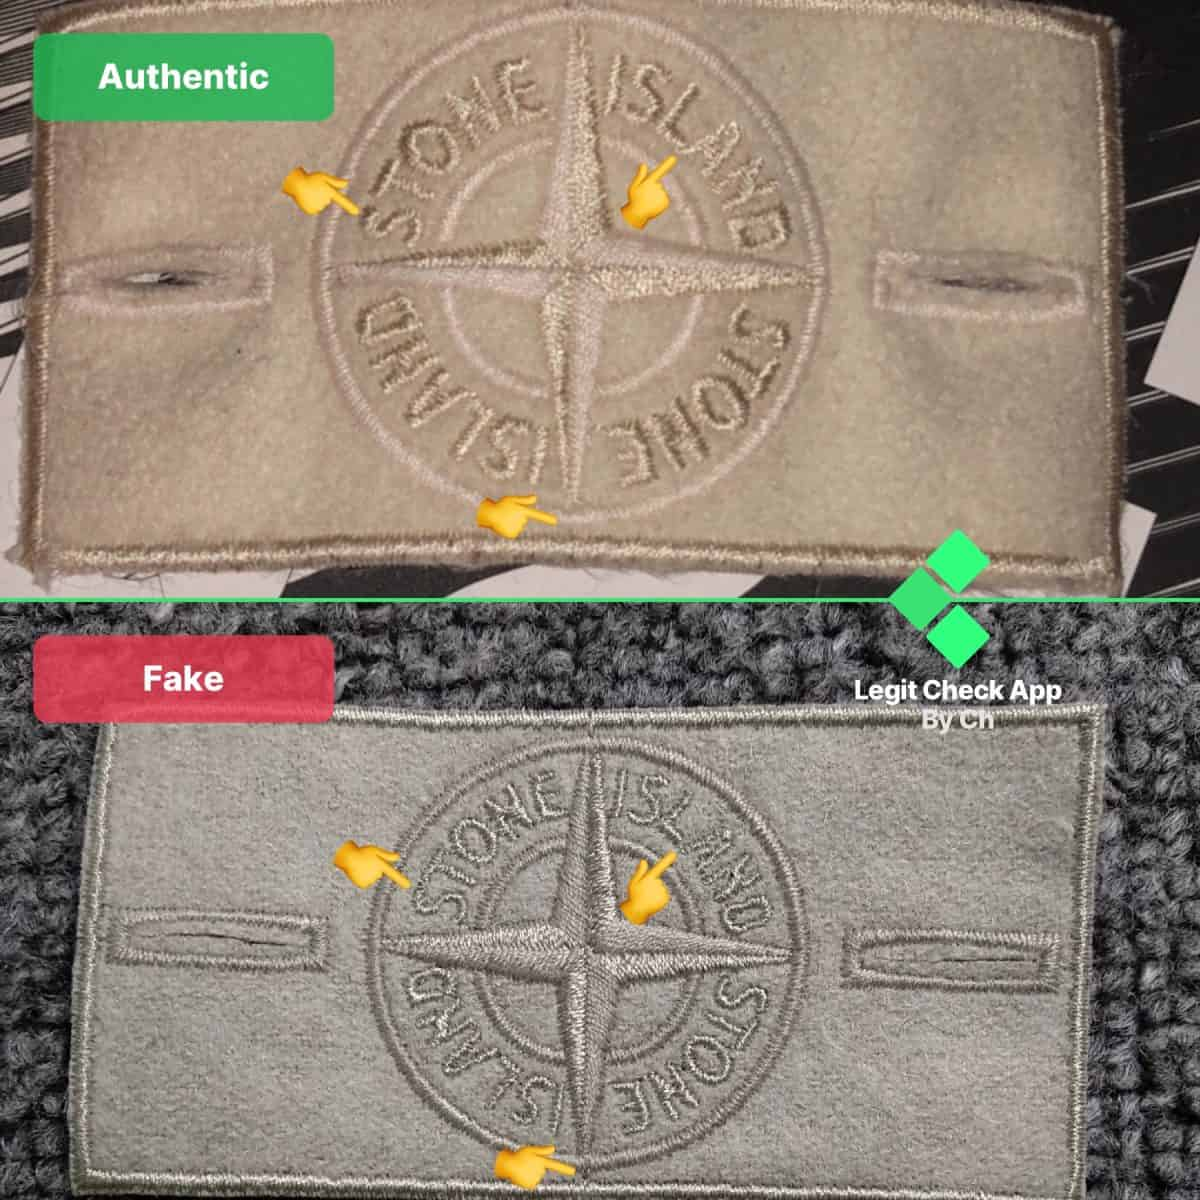 Stone Island Fake vs Real Guide